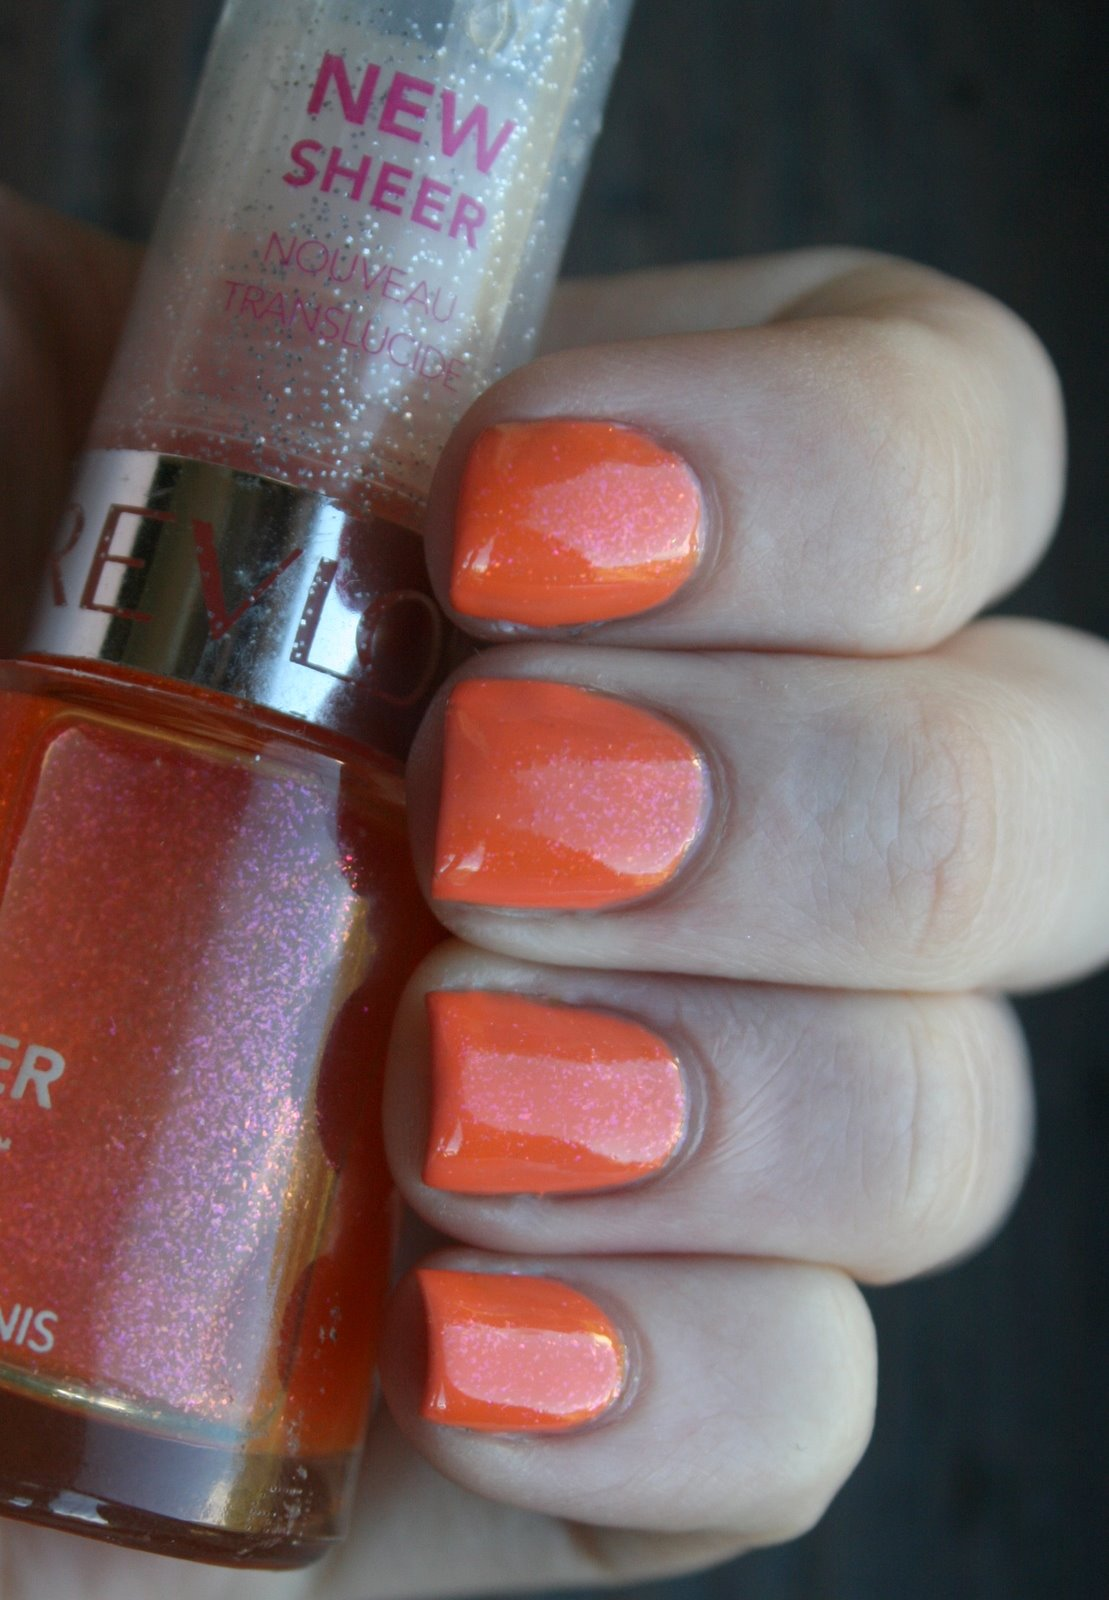 Revlon Apricot Freeze Glimmer Gloss over Australis - Citrus